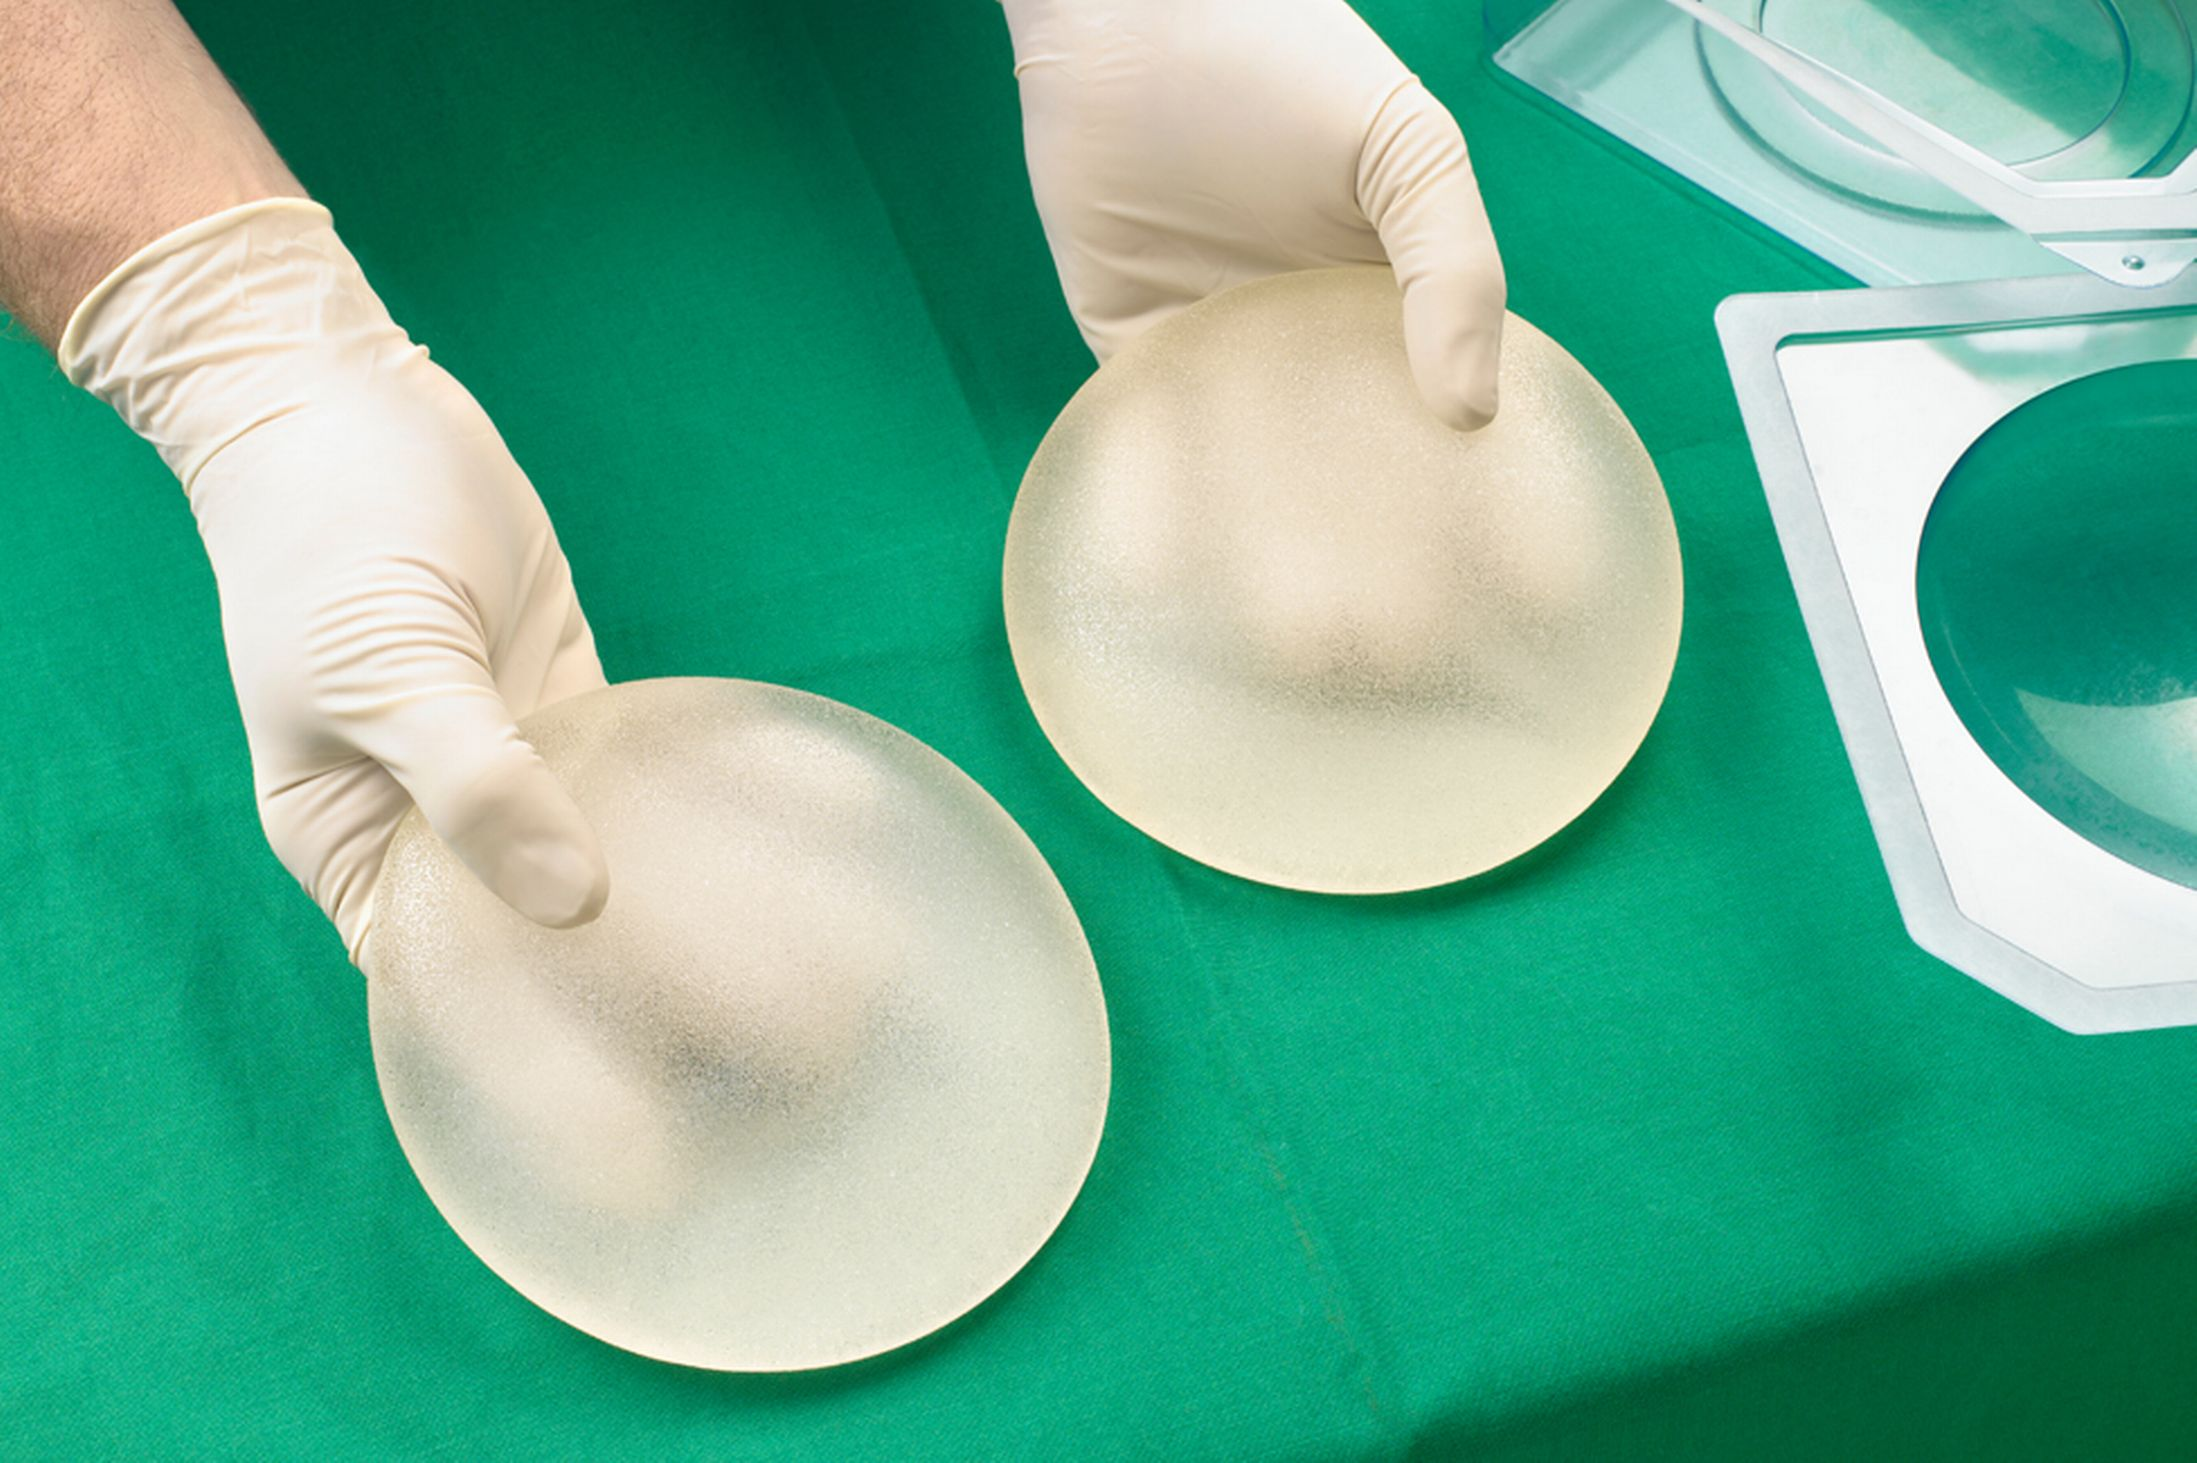 Surgeon-holding-silicone-breast-implants